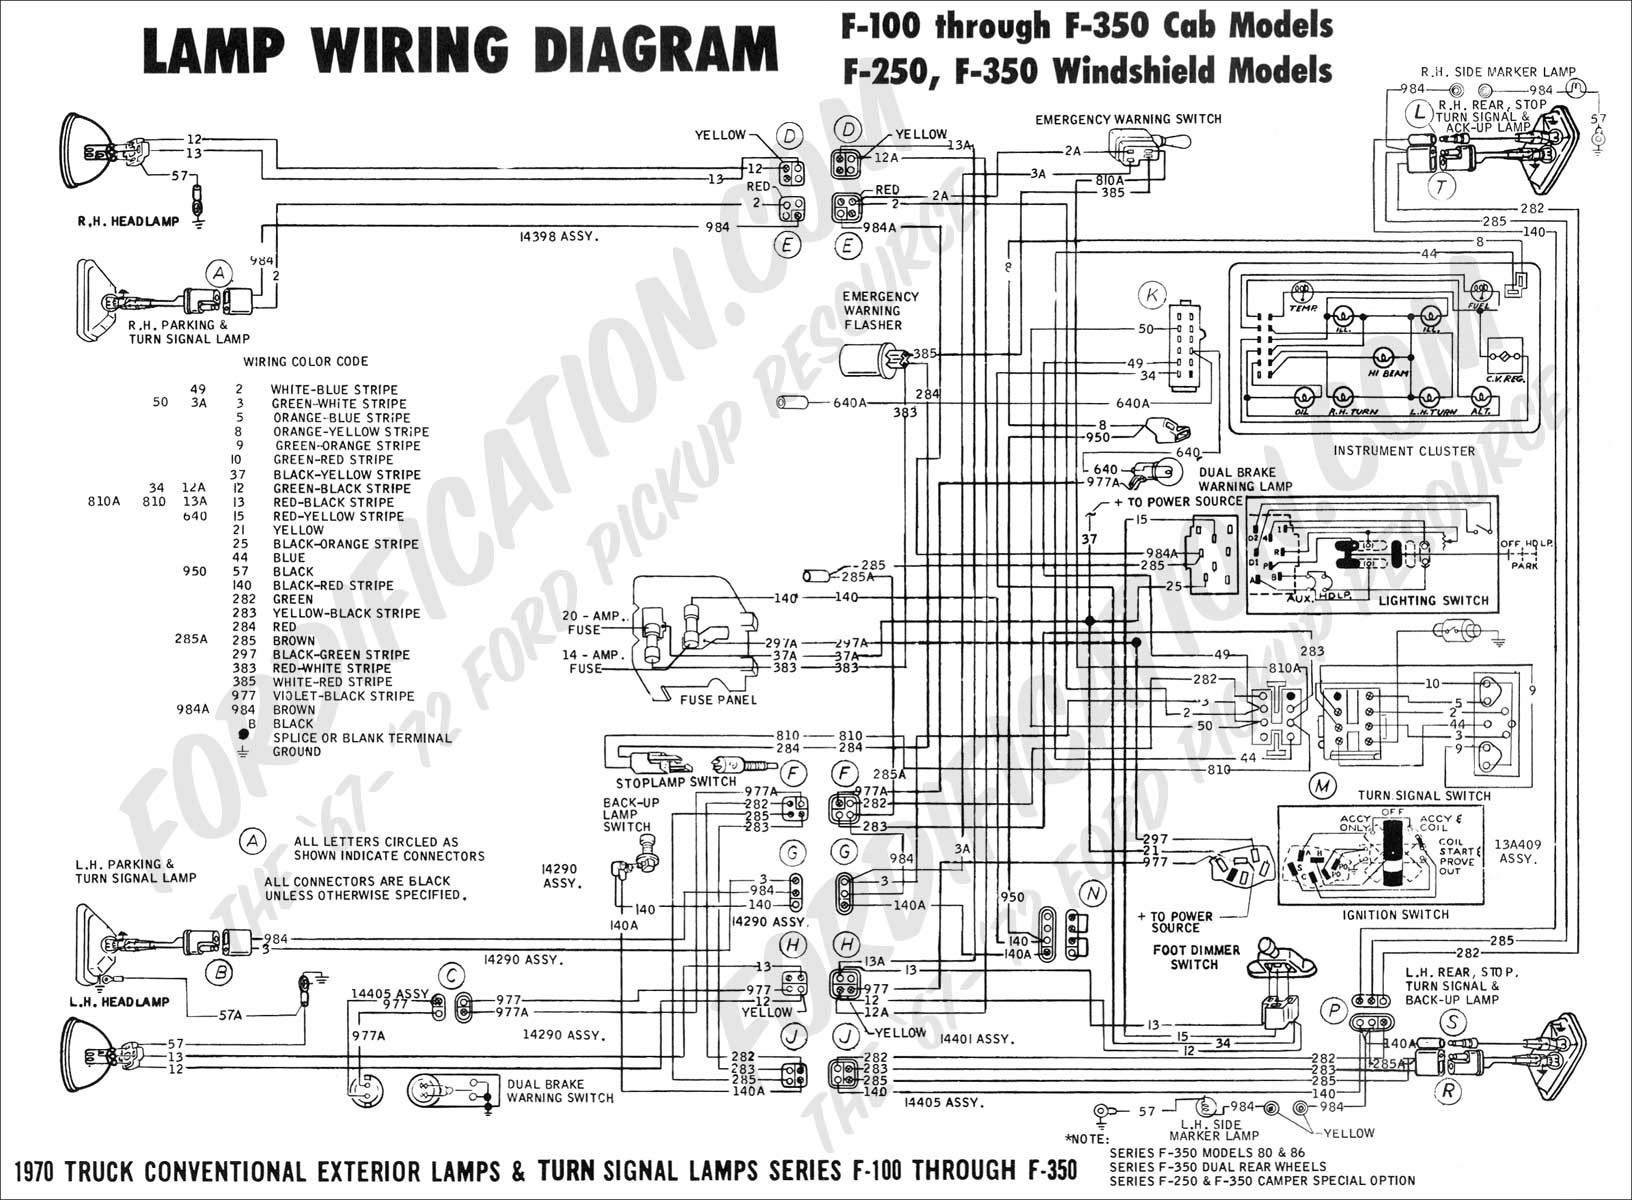 2012 ford f150 car stereo wiring diagram radiobuzz48com wire center u2022 rh 45 77 113 201